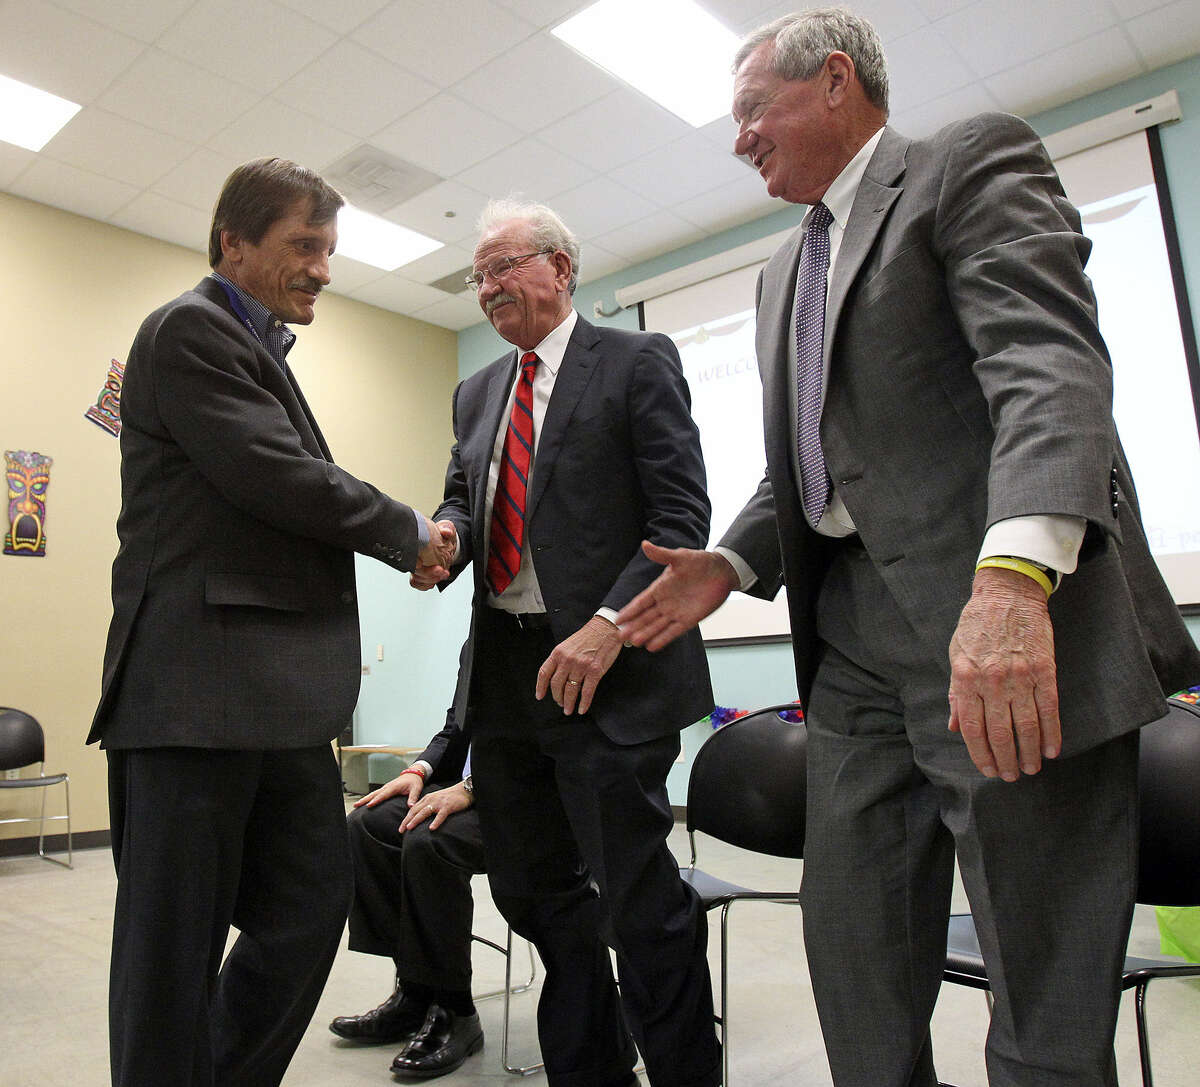 Evan Benton, one of Haven's first graduates, who spoke at the event, shakes hands with former Mayor Phil Hardberger and Haven founder Bill Greehey.